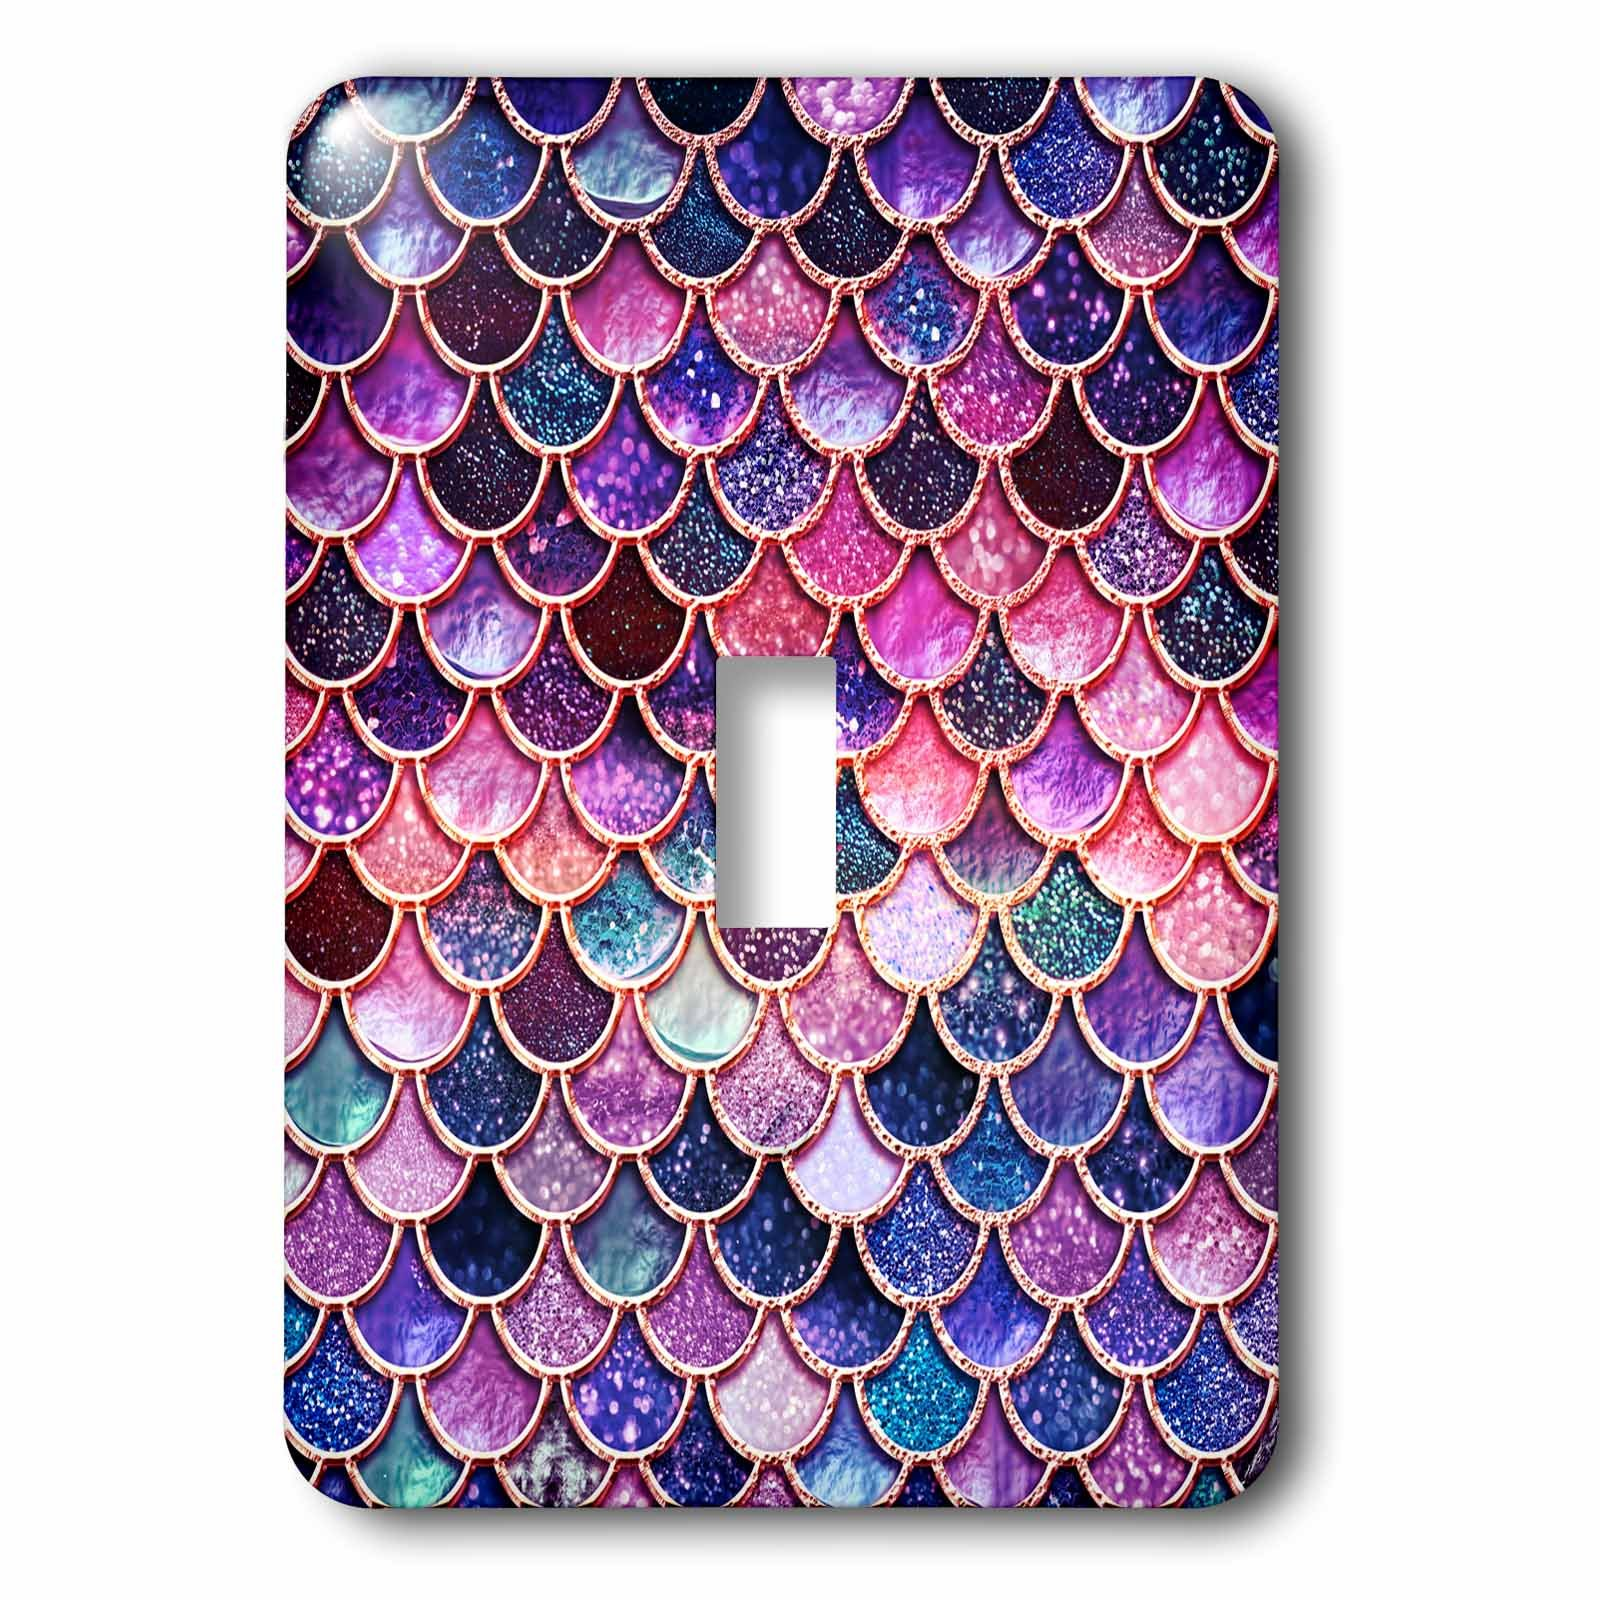 3dRose lsp_272859_1 Multicolor Girly Trend Pink Luxury Elegant Mermaid Scales Glitter Toggle Switch, Mixed